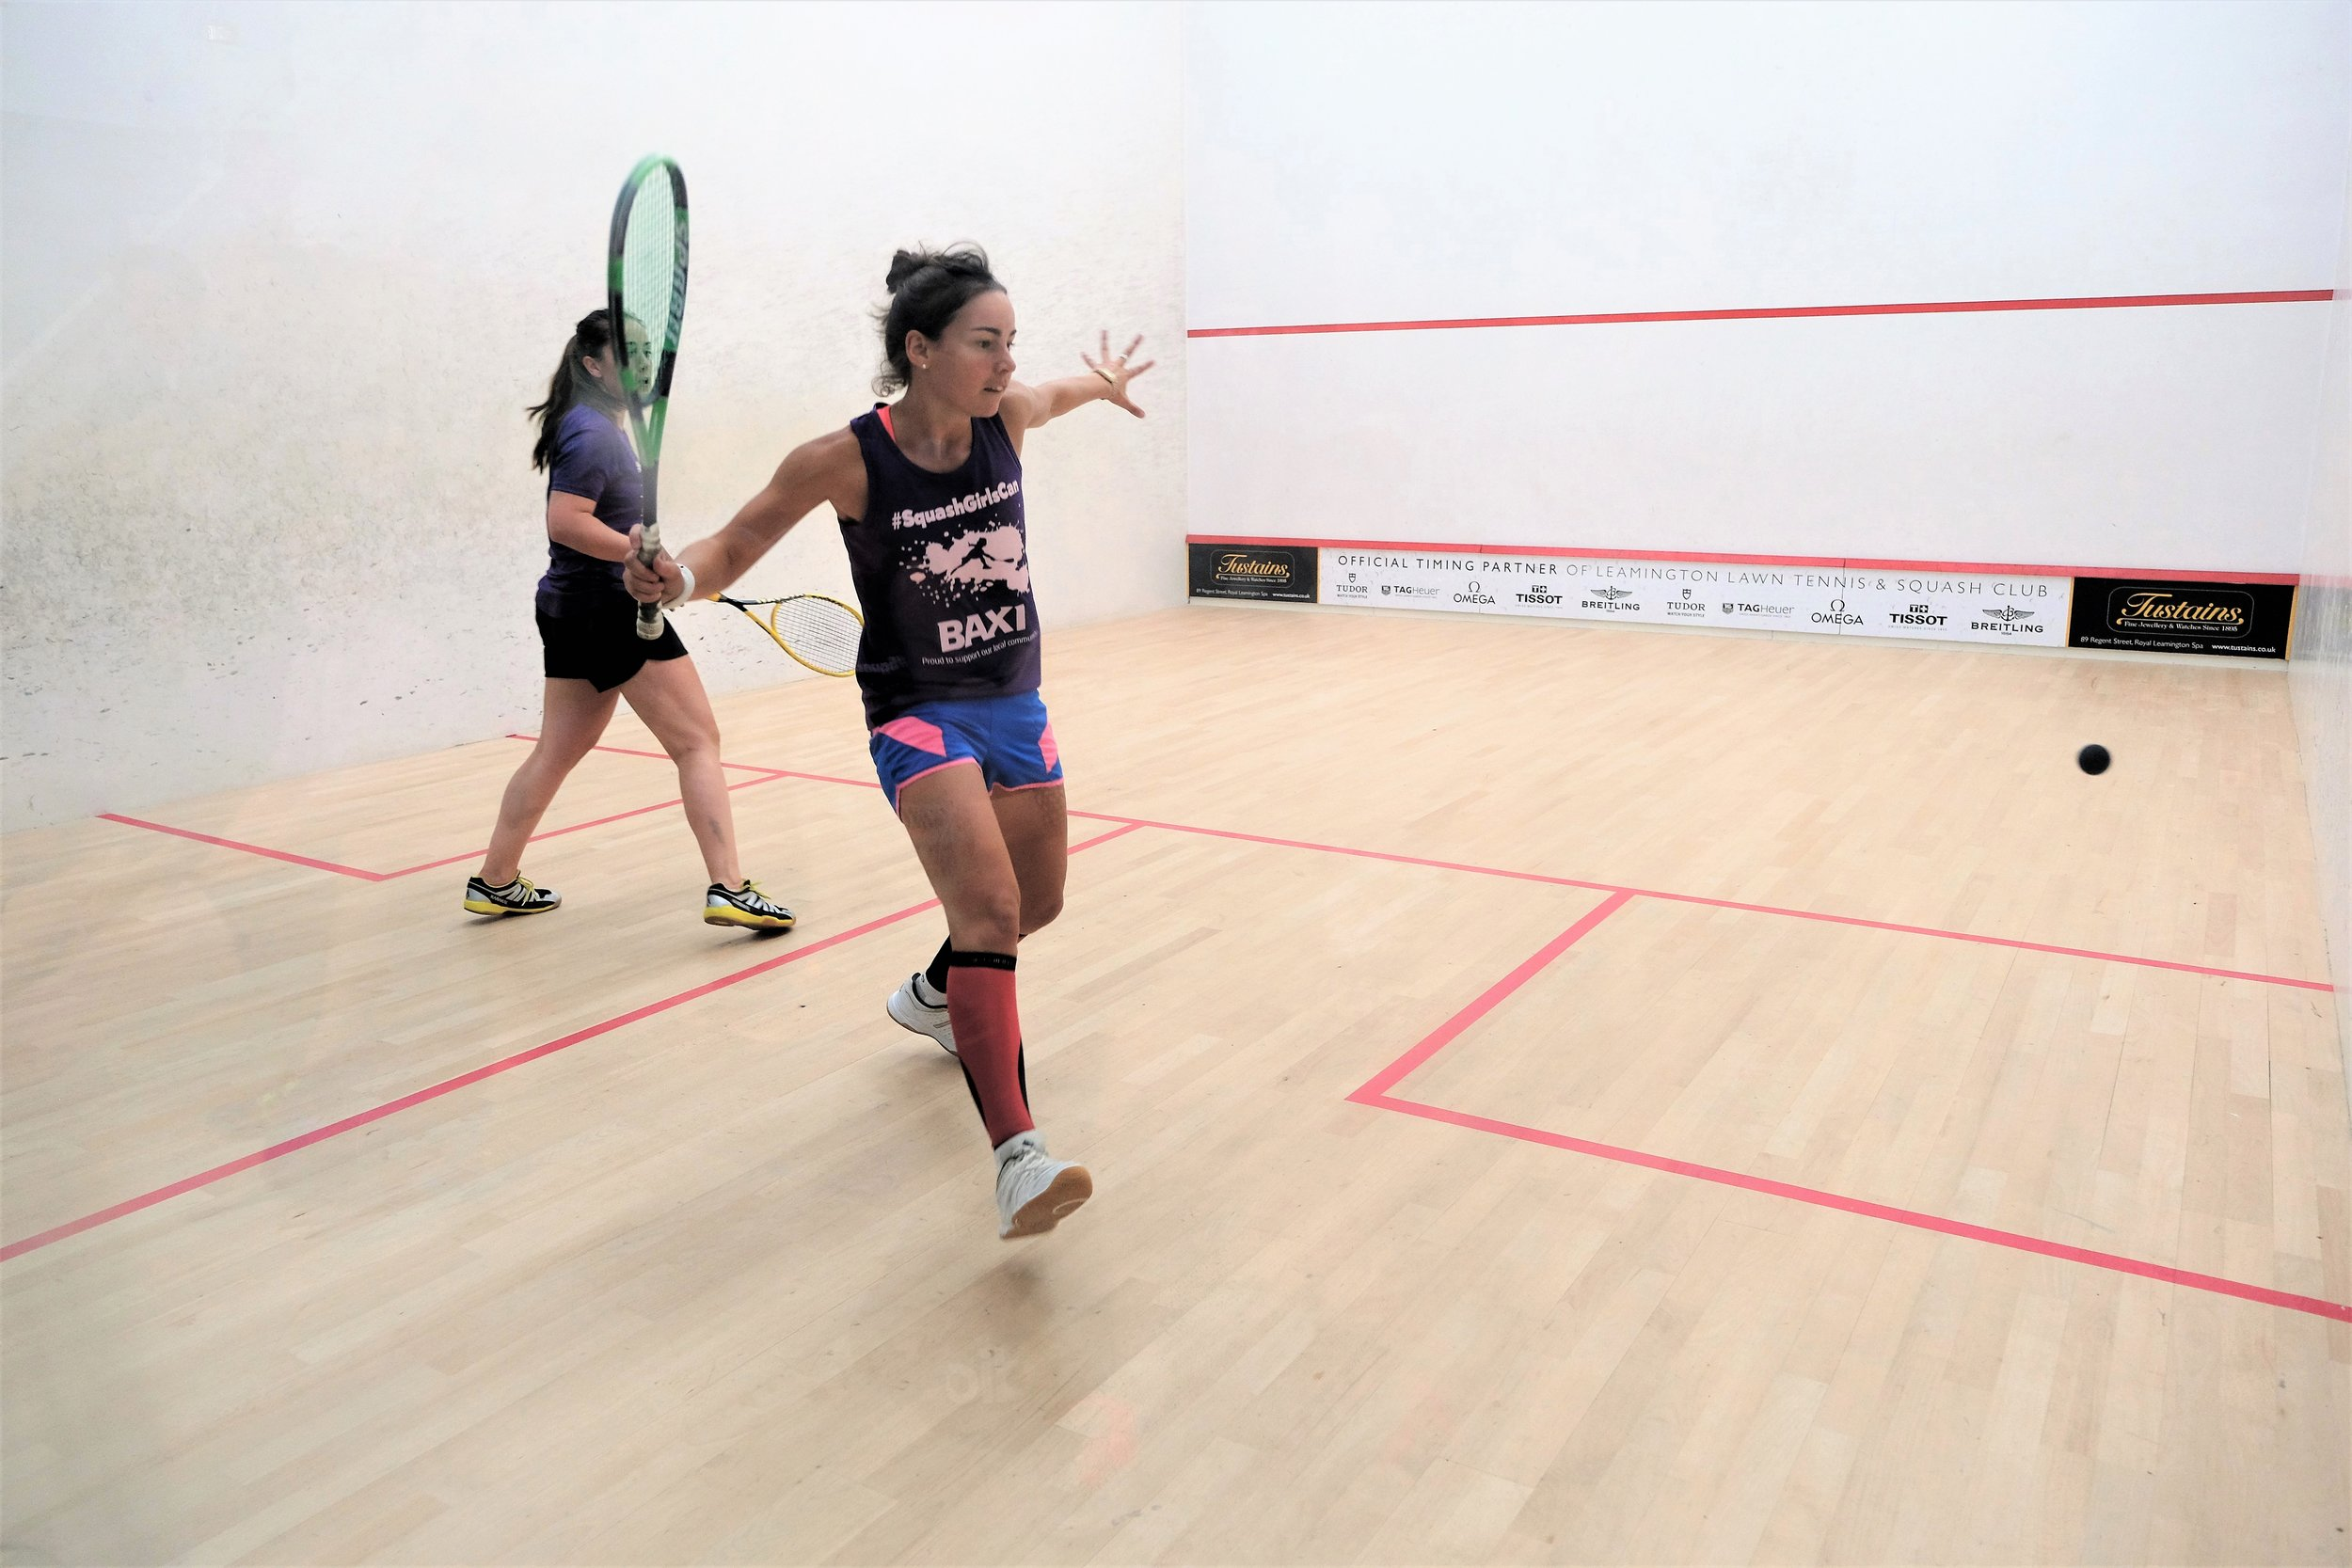 Leamington Spa Event photographer - sports event photography squash professional players (female) warwickshire.JPG